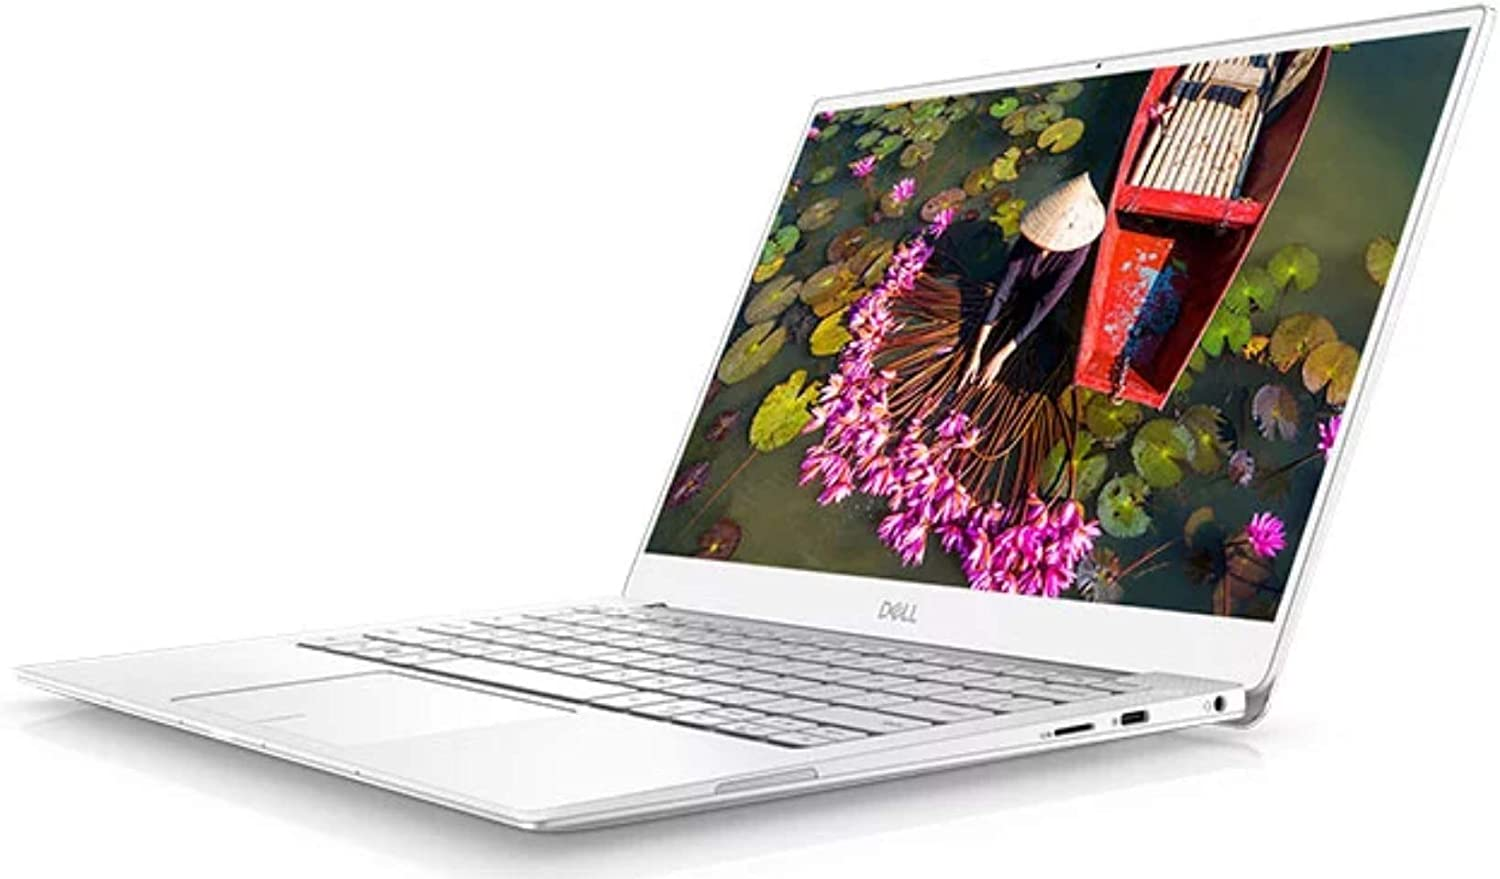 "Dell XPS 9380 Laptop, 13.3"" 4K UHD (3840x2160) Touchscreen, Intel Core 8th Gen i7-8565U, 16GB RAM, 1 TB Solid State Drive, Windows 10 Pro, Frost White"